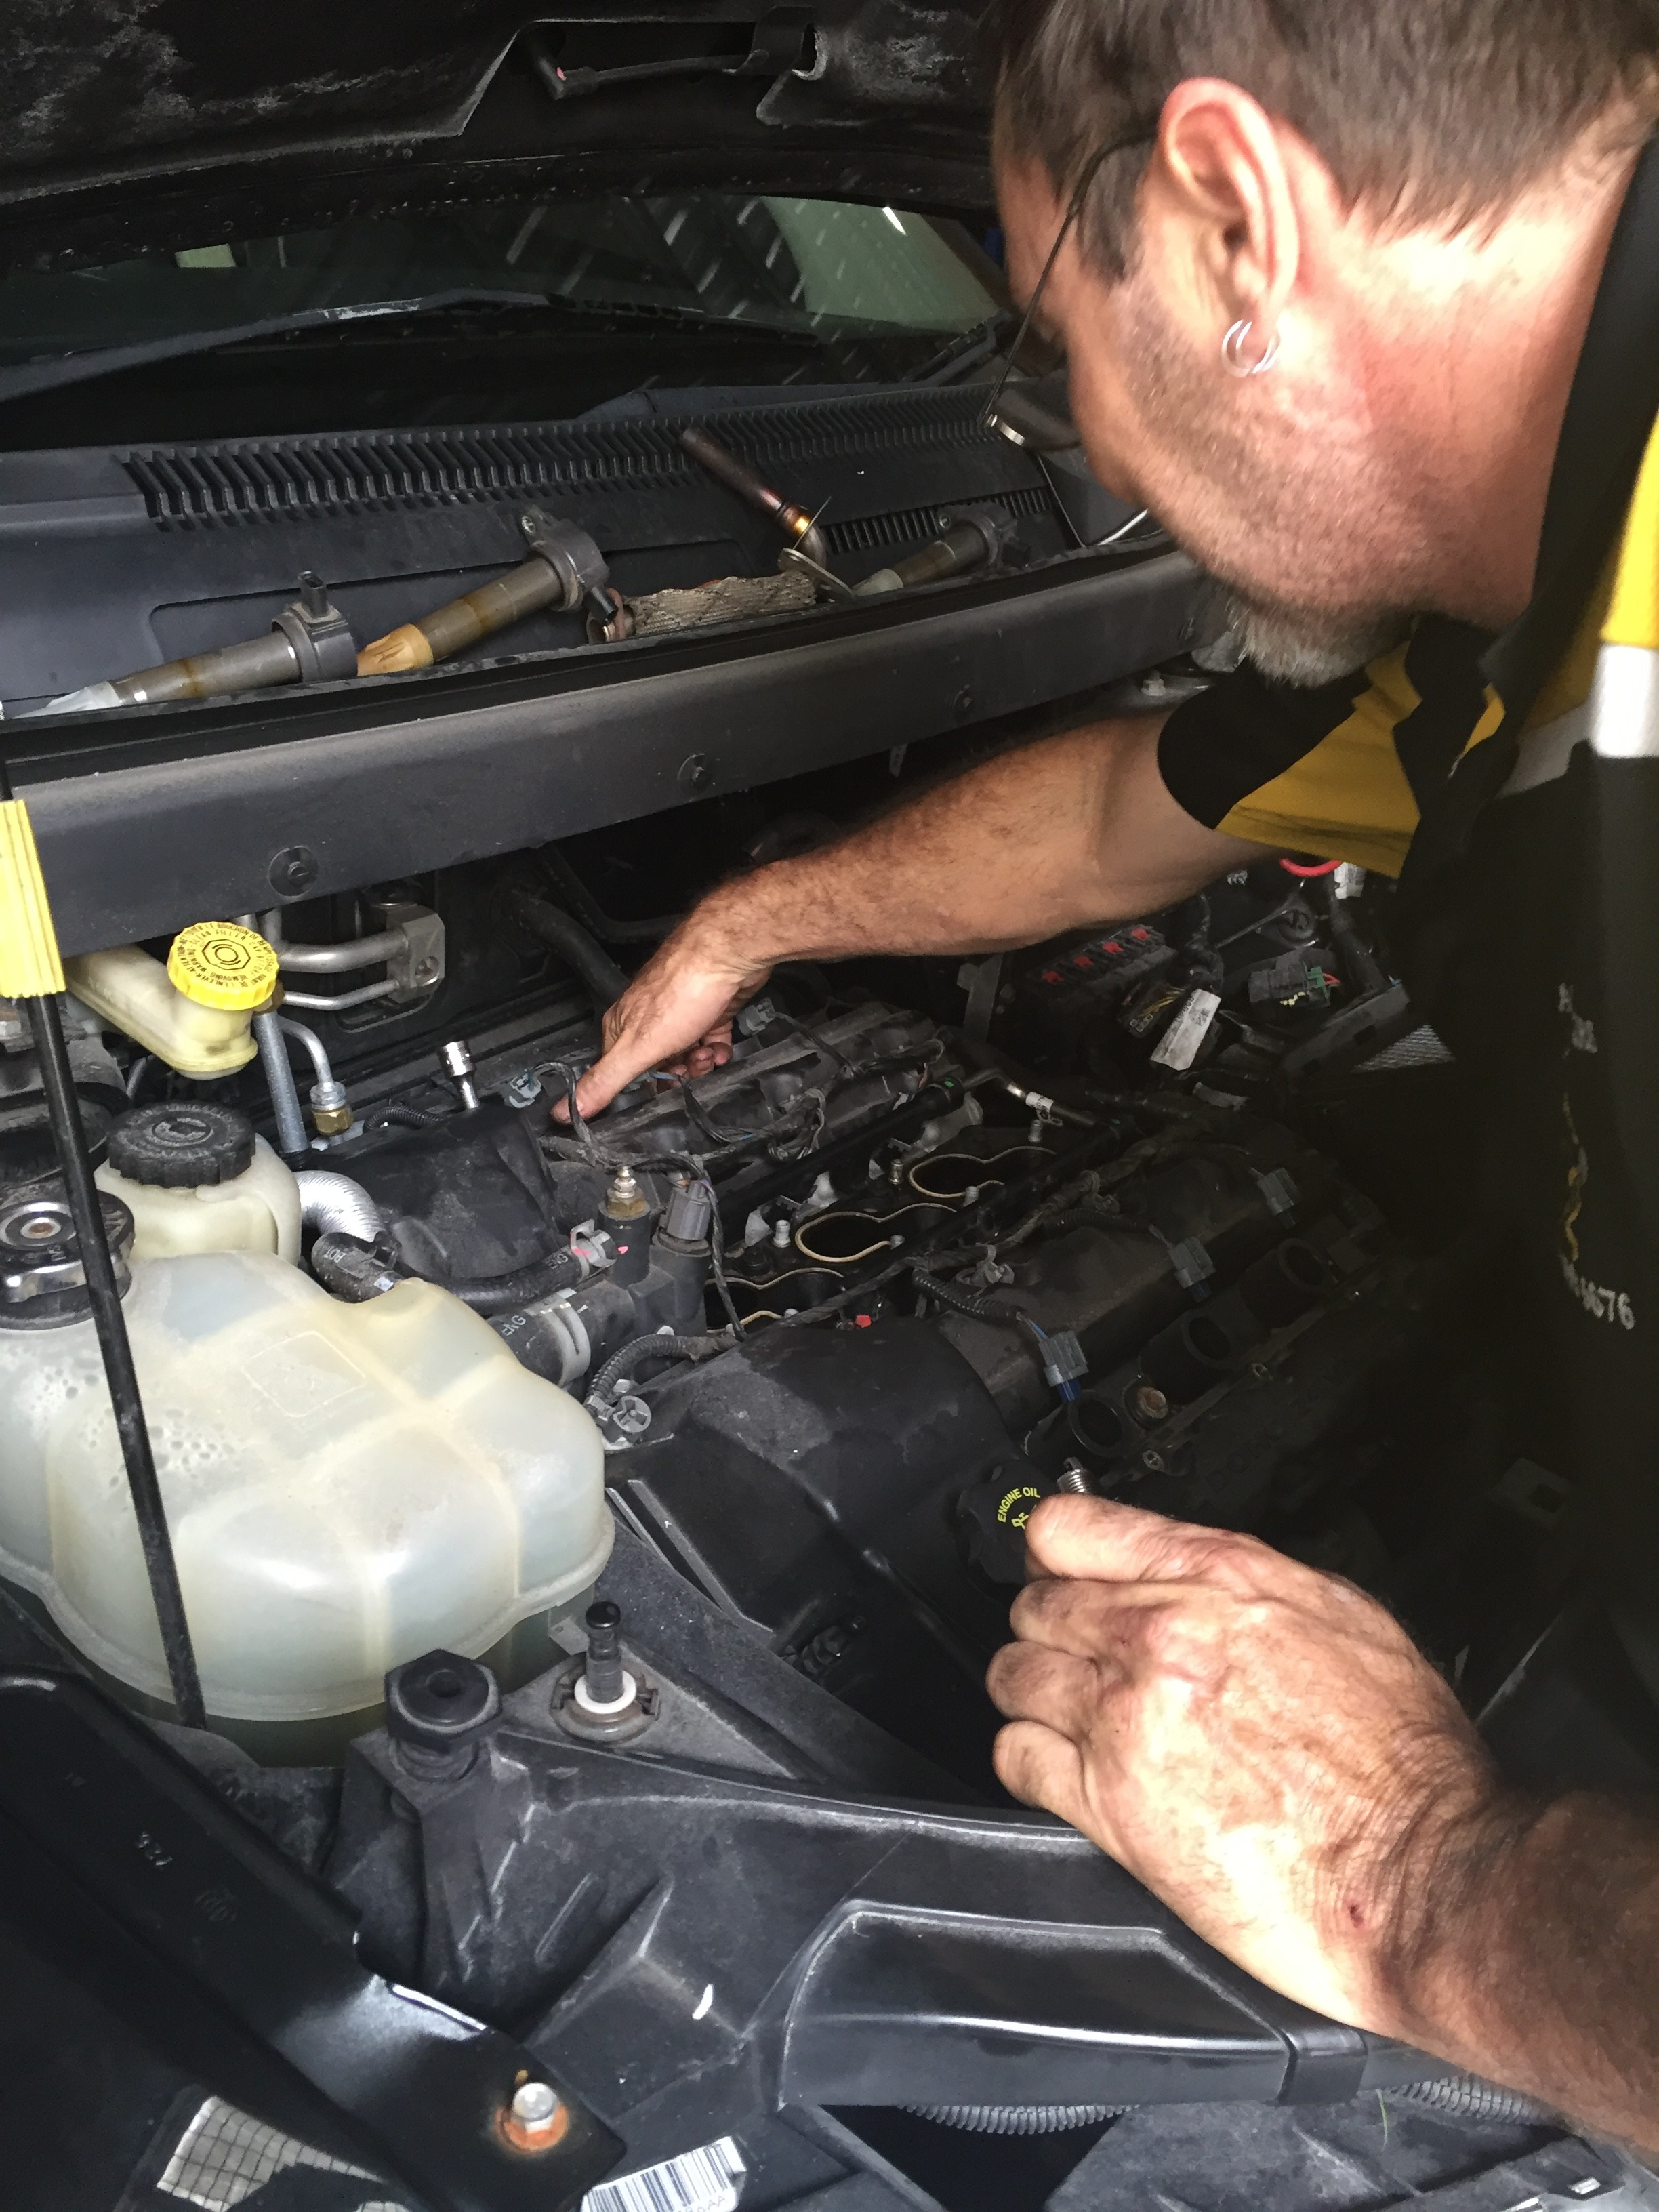 Keeping your vehicle in tip top condition.